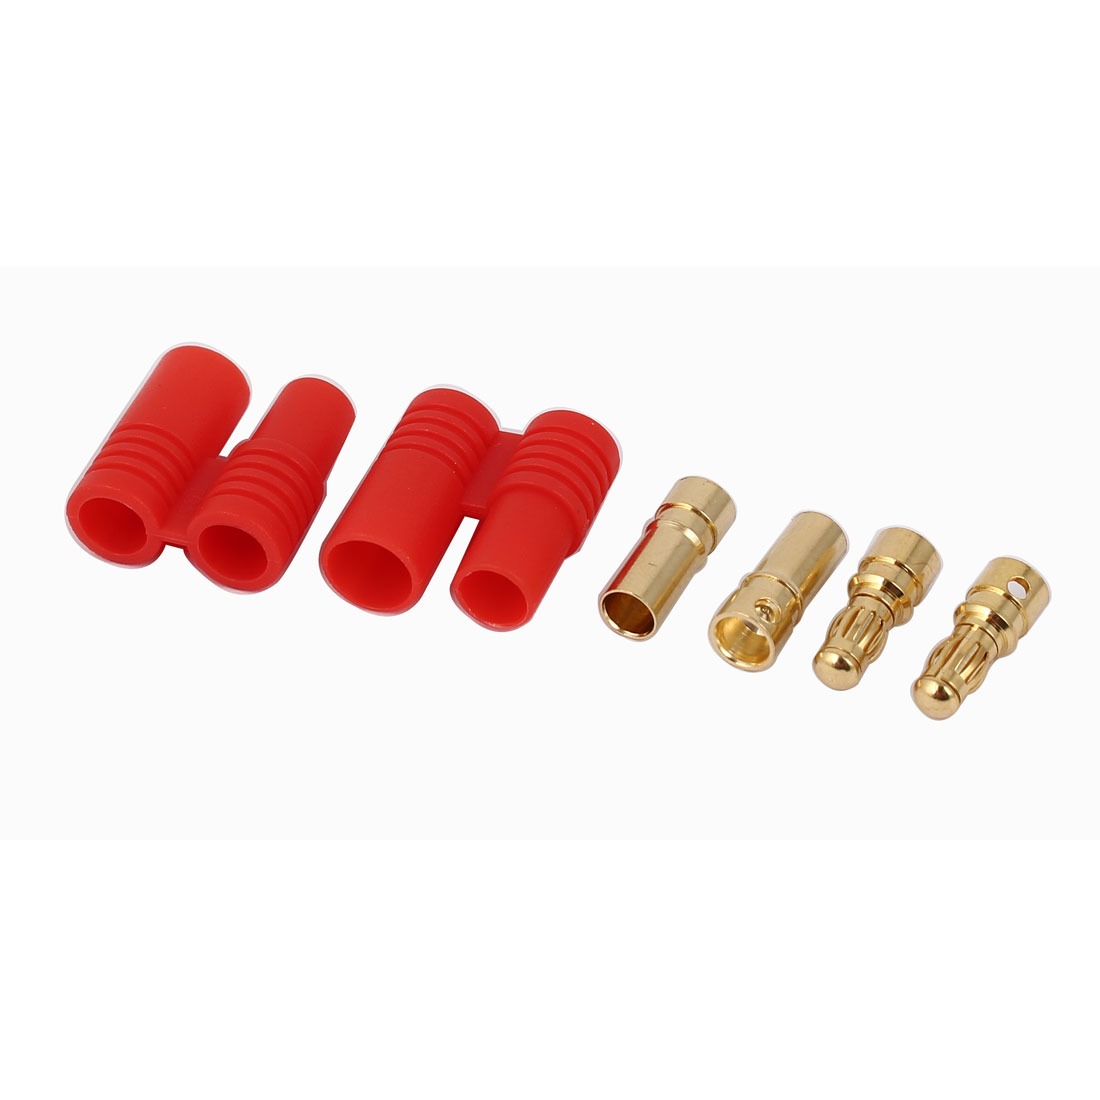 Audio Cable Red Gold Tone Screw Type Dual 3.5mm Banana Connector 2 Pairs